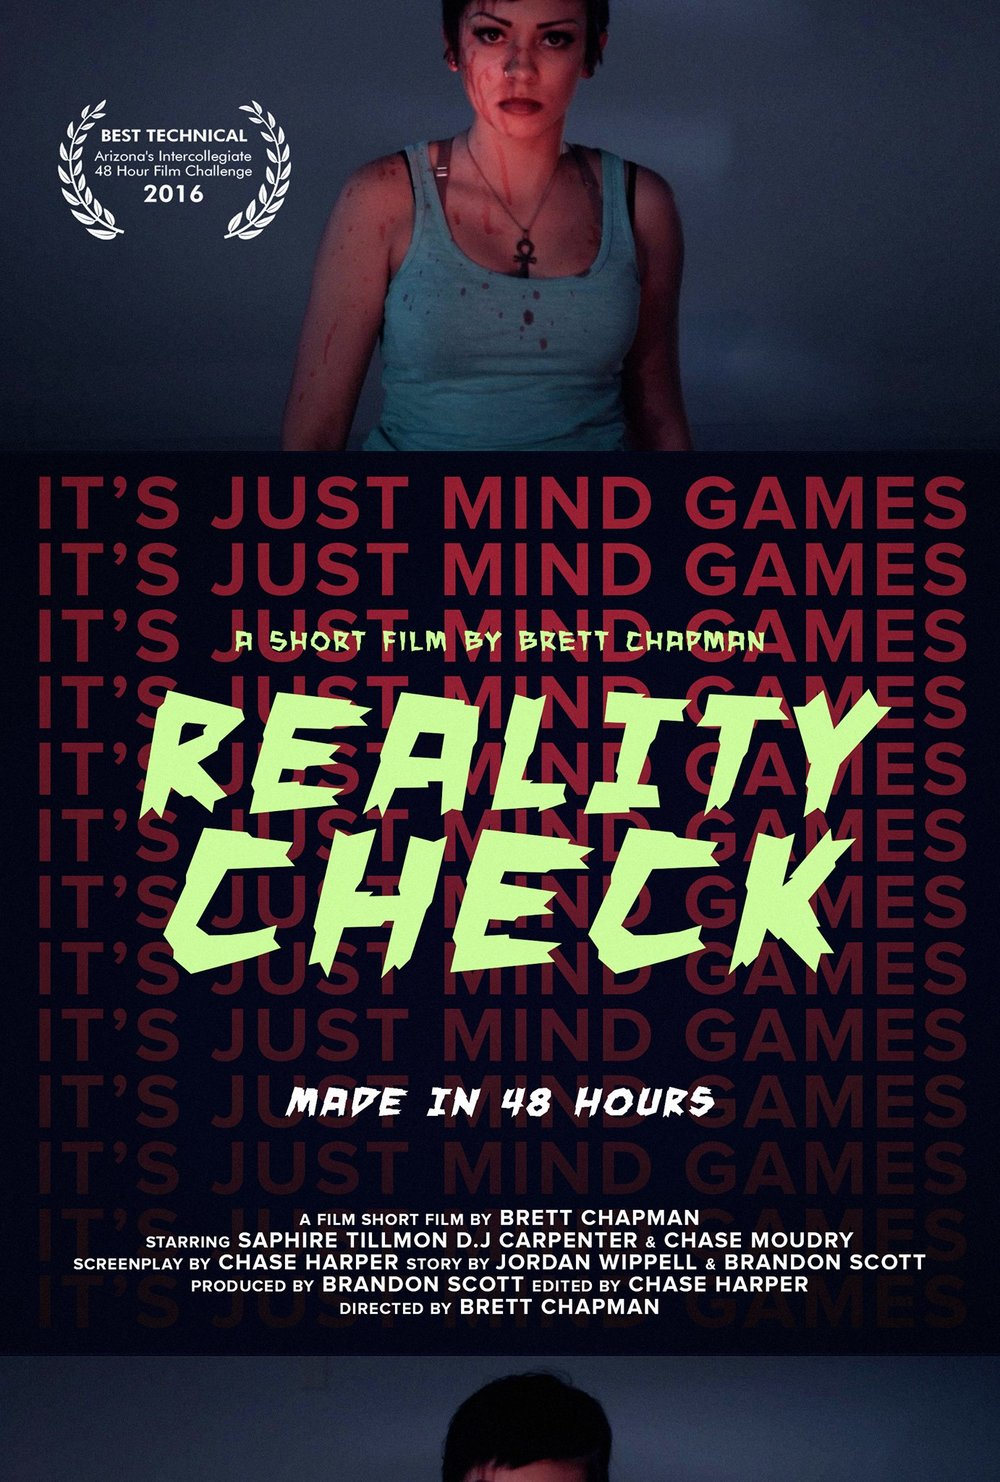 Reality Check (2015) - A 48-hour film challenge short, this took home